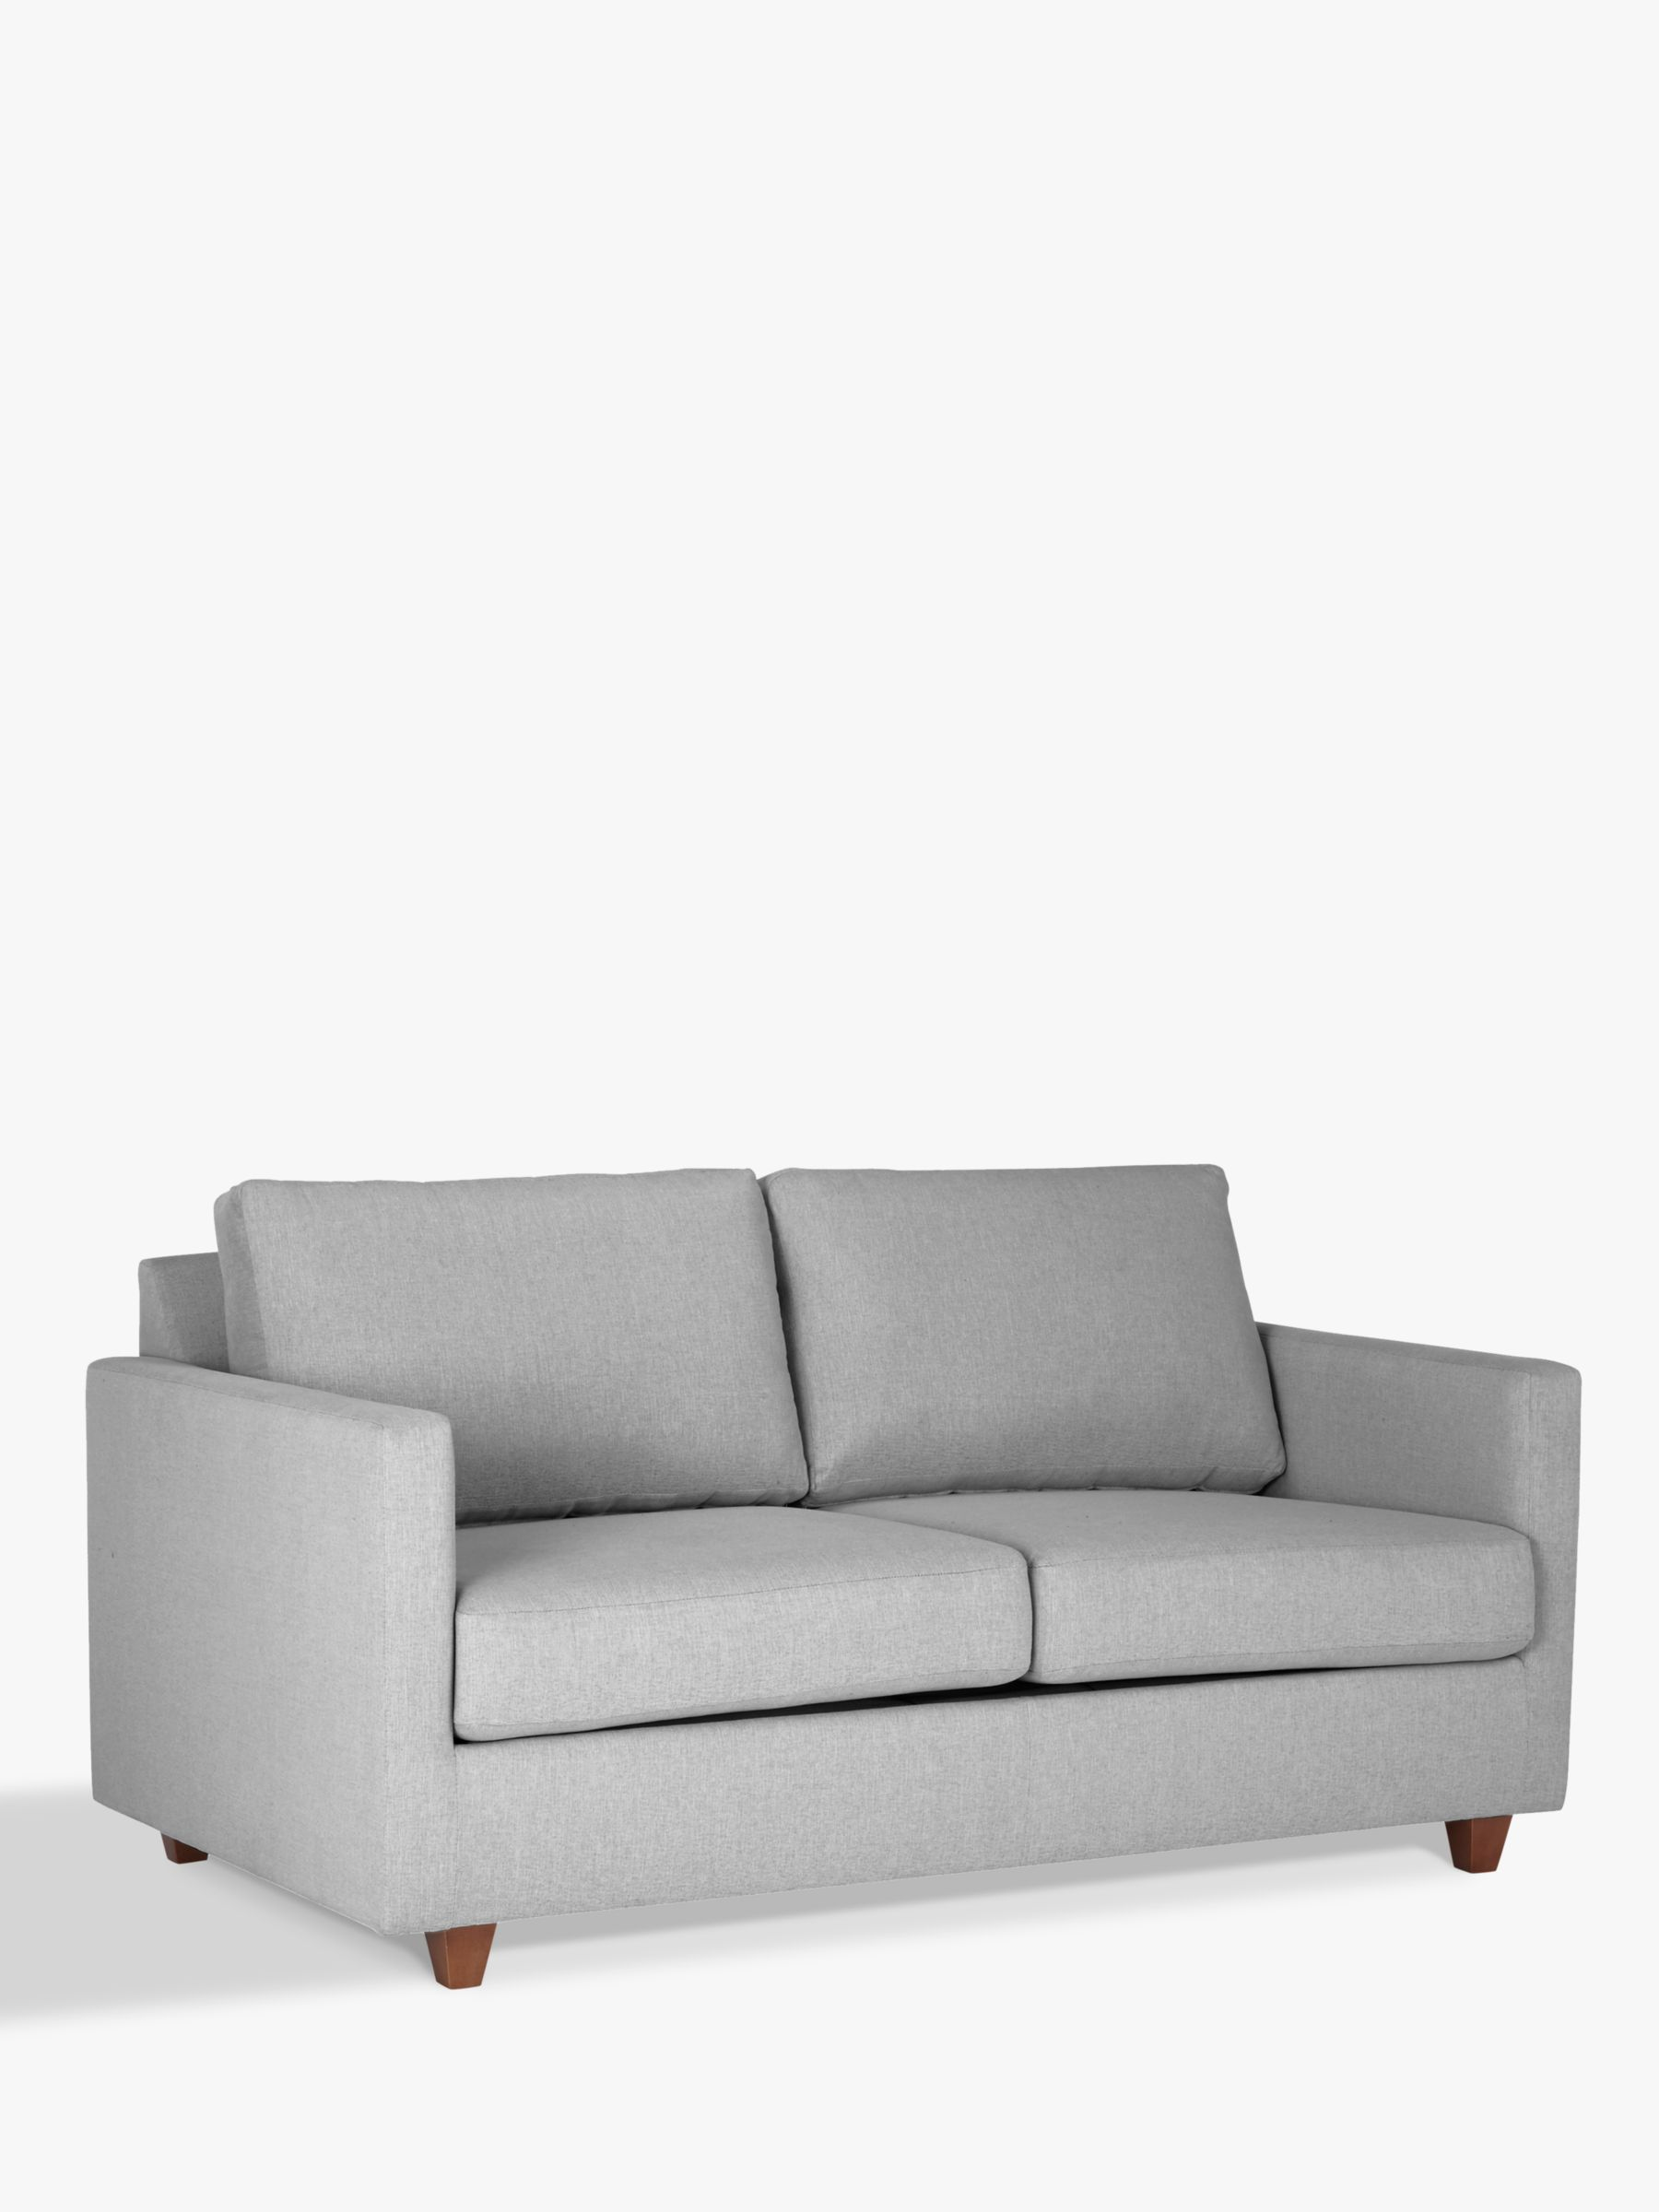 john lewis sofa bed cushions to go on tan leather partners barlow large 3 seater with memory buyjohn foam mattress online at